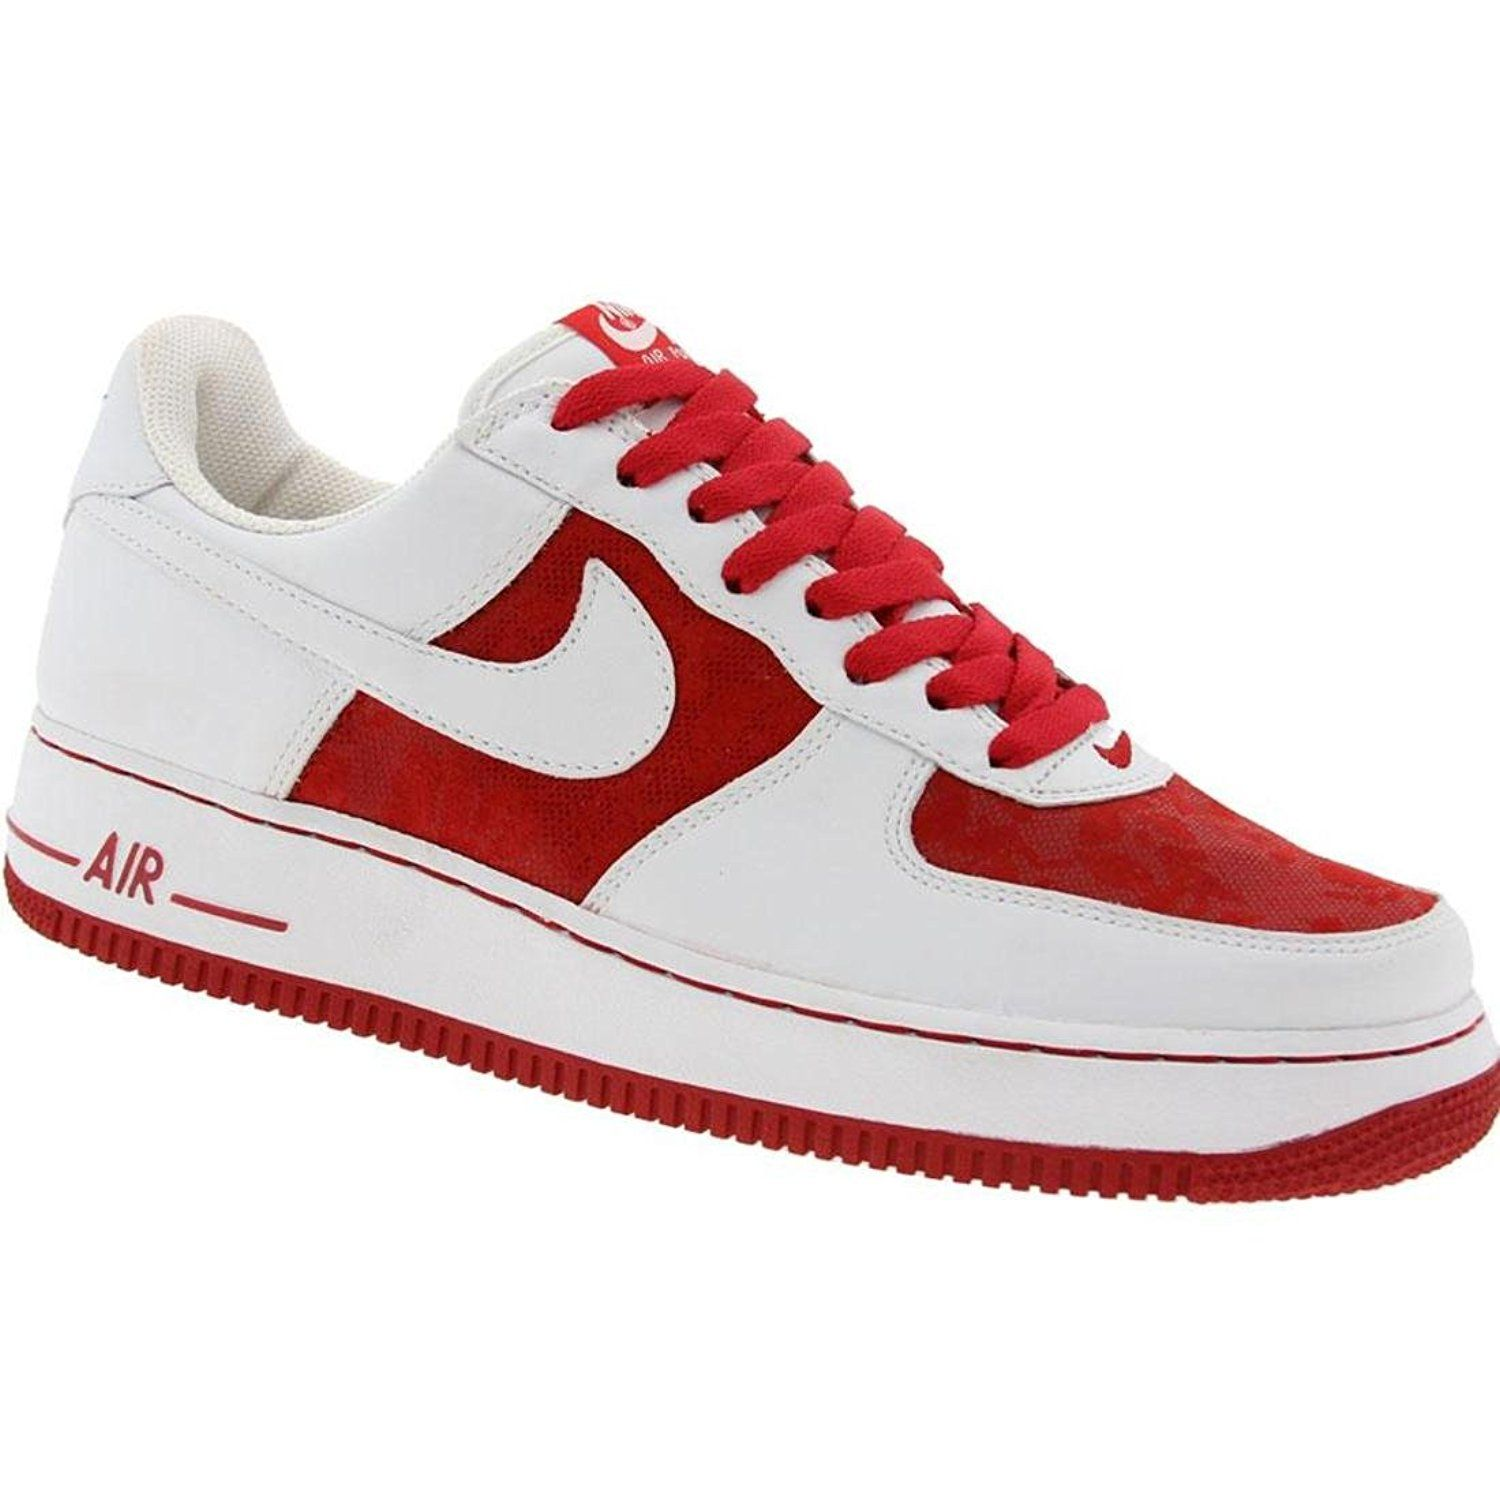 air force one basketball shoes